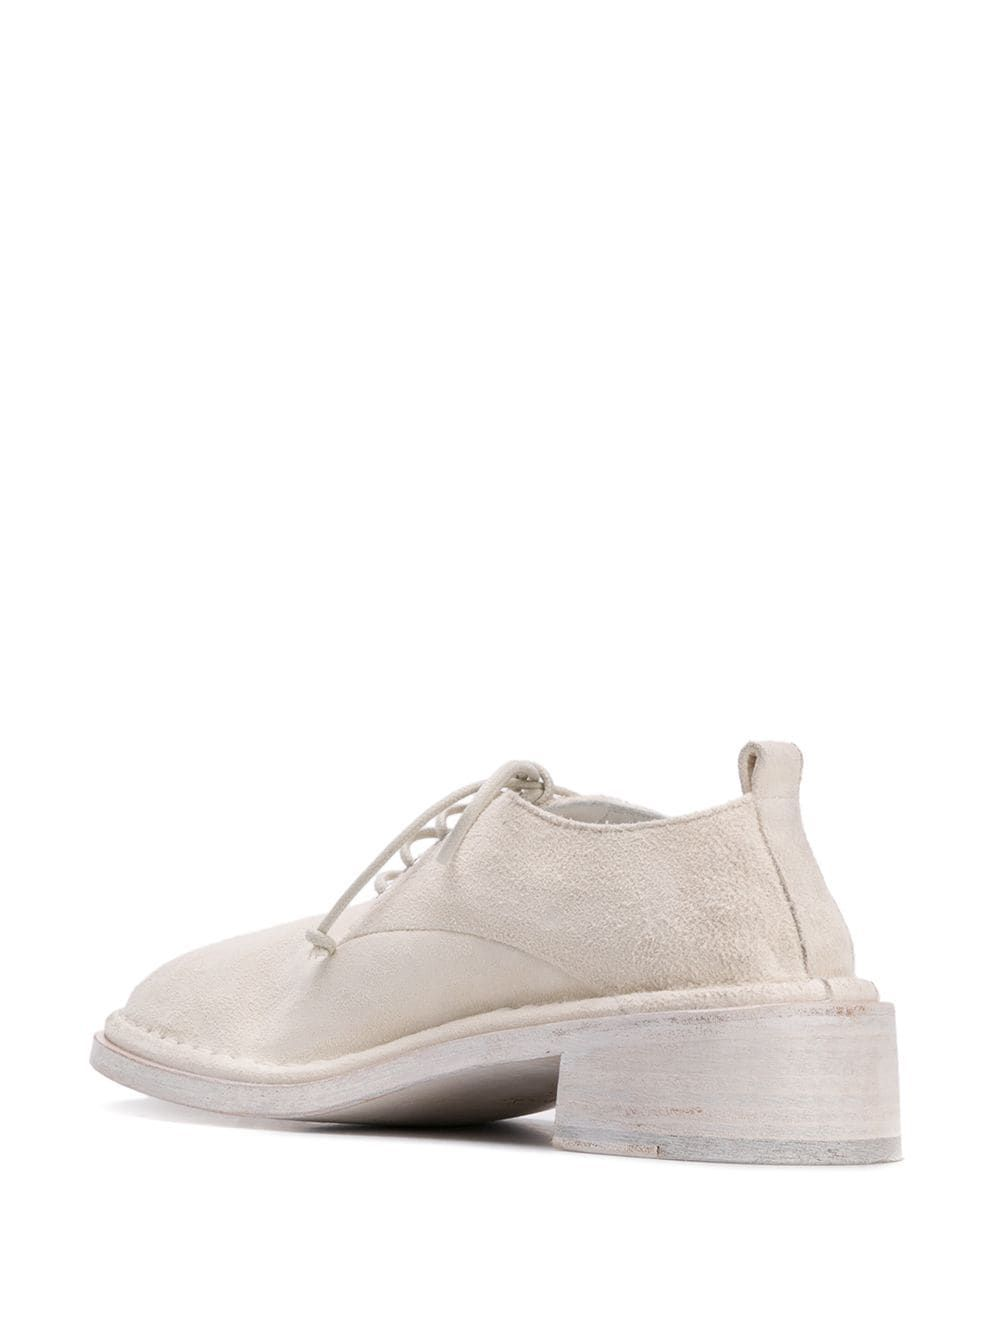 MARSELL WOMEN'S MW5761459110 WHITE LEATHER LACE-UP SHOES